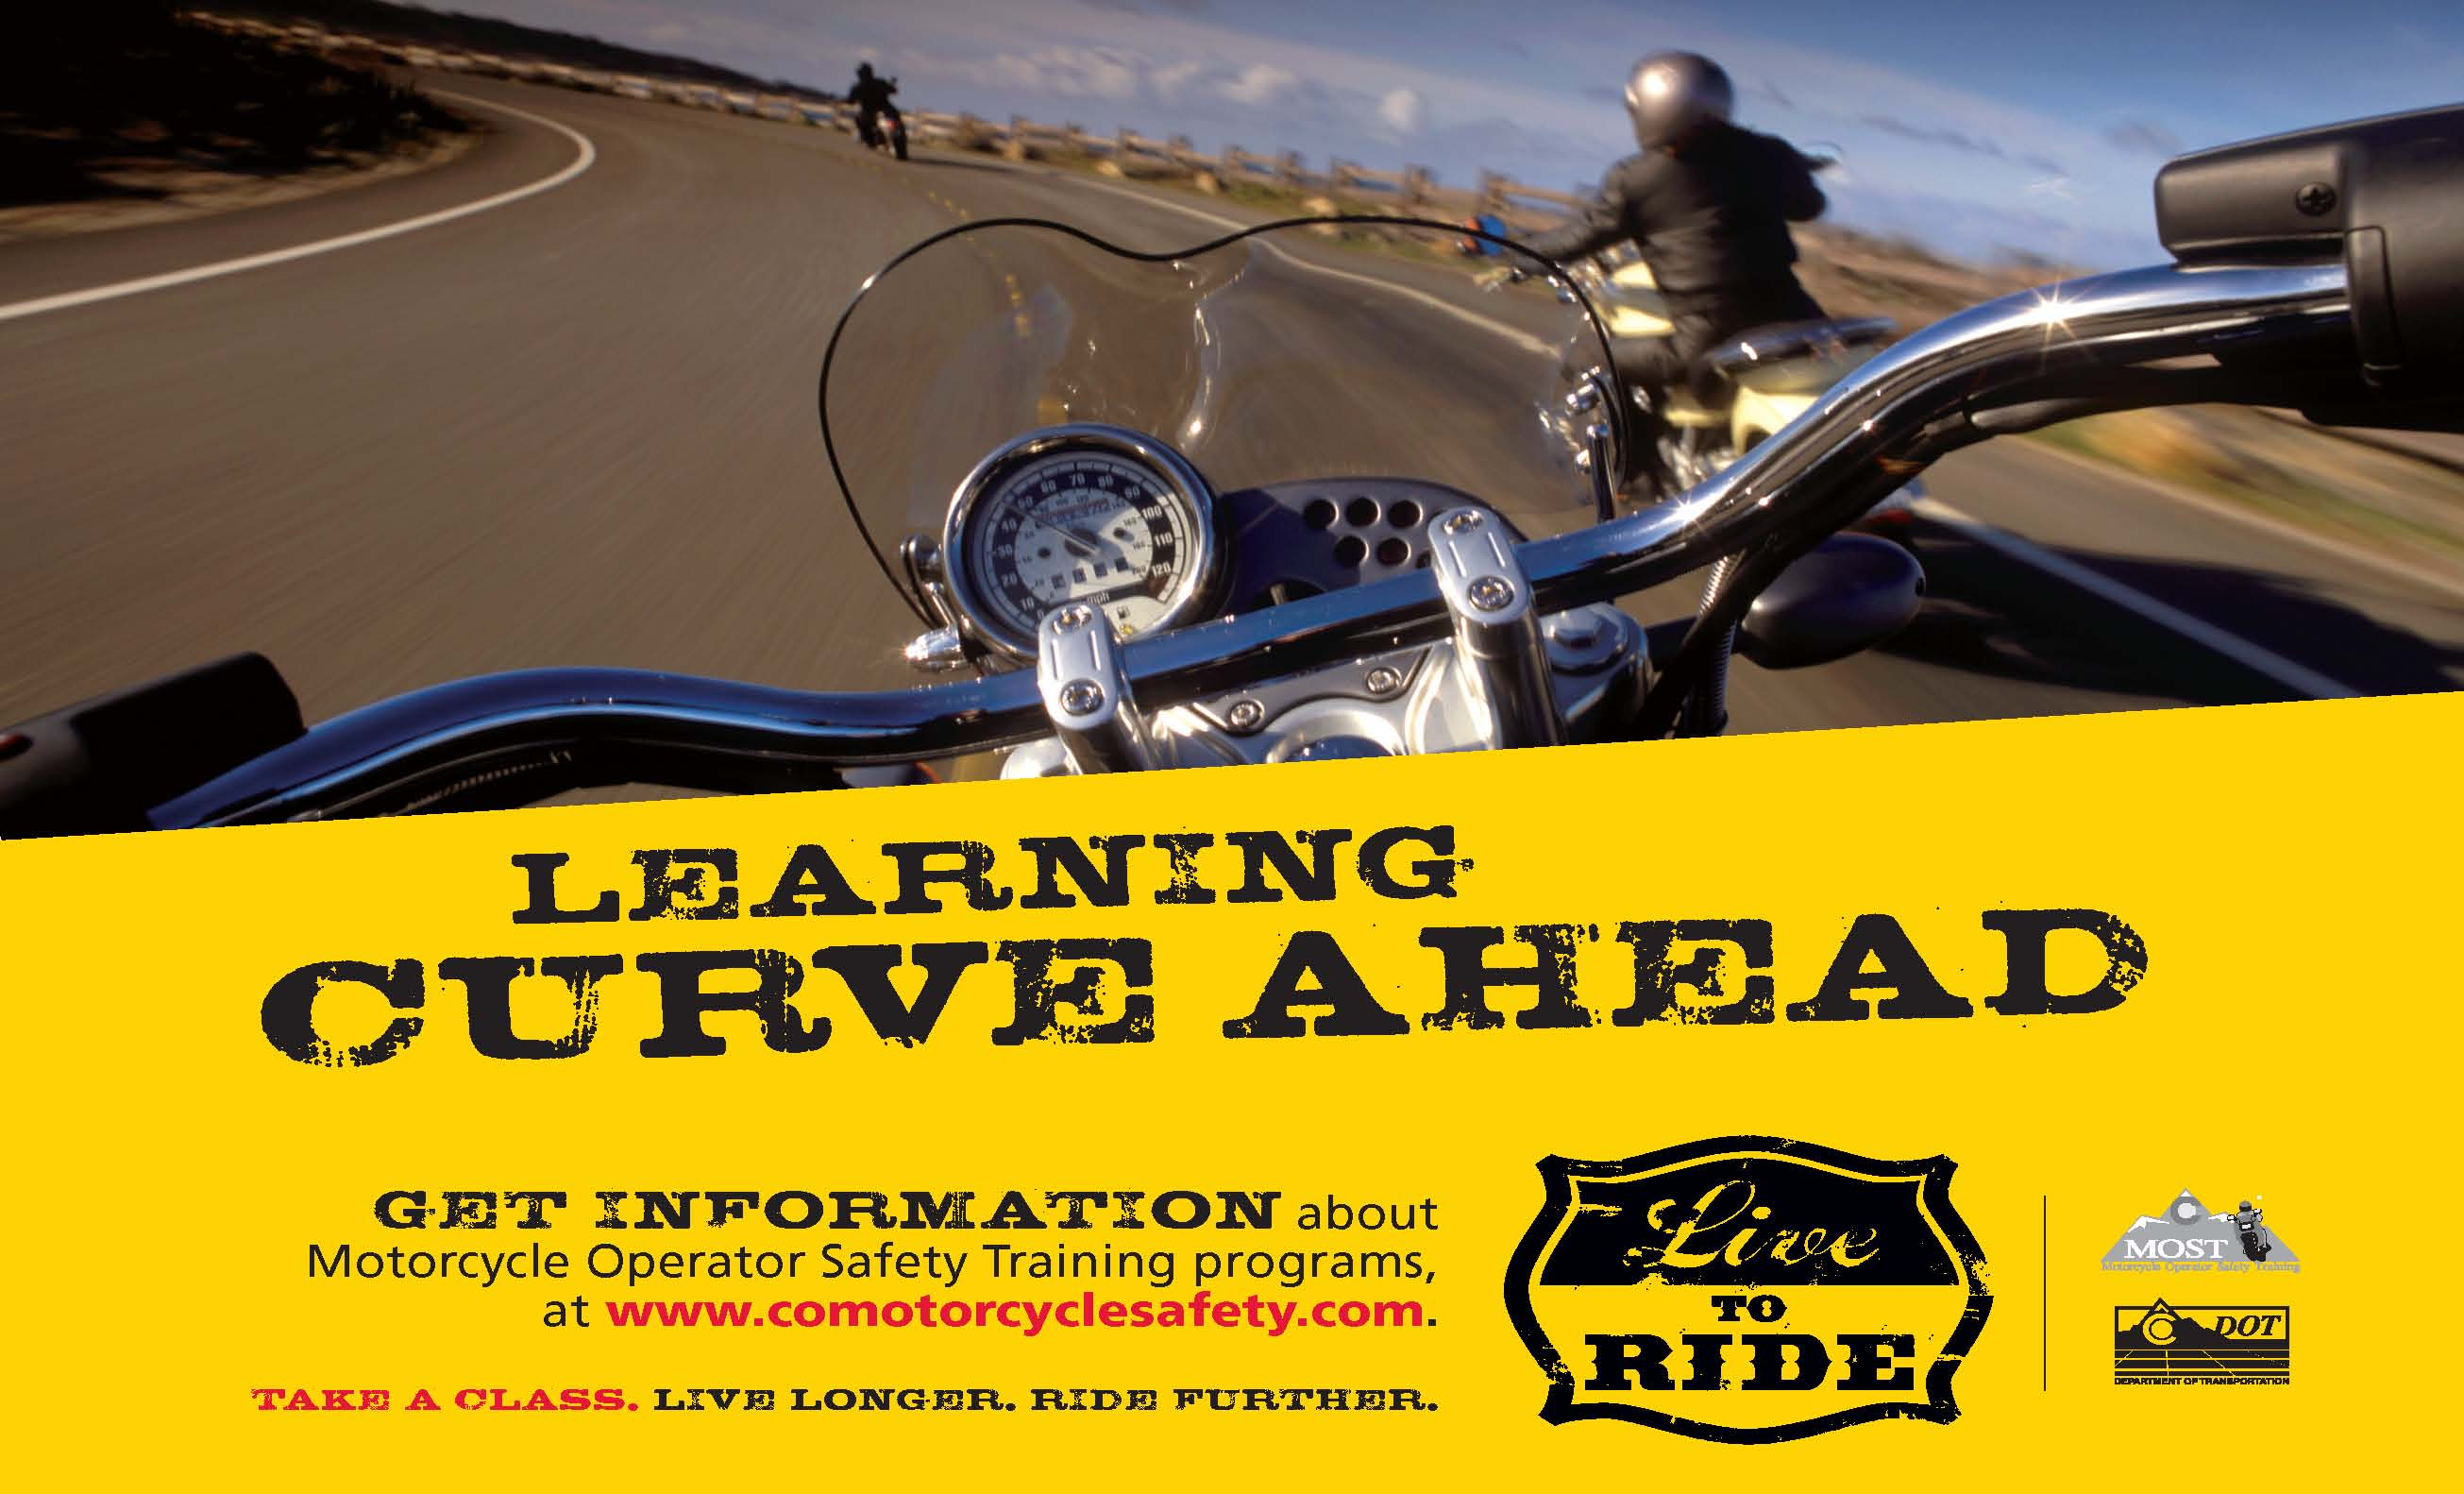 Learning Curve Ad detail image